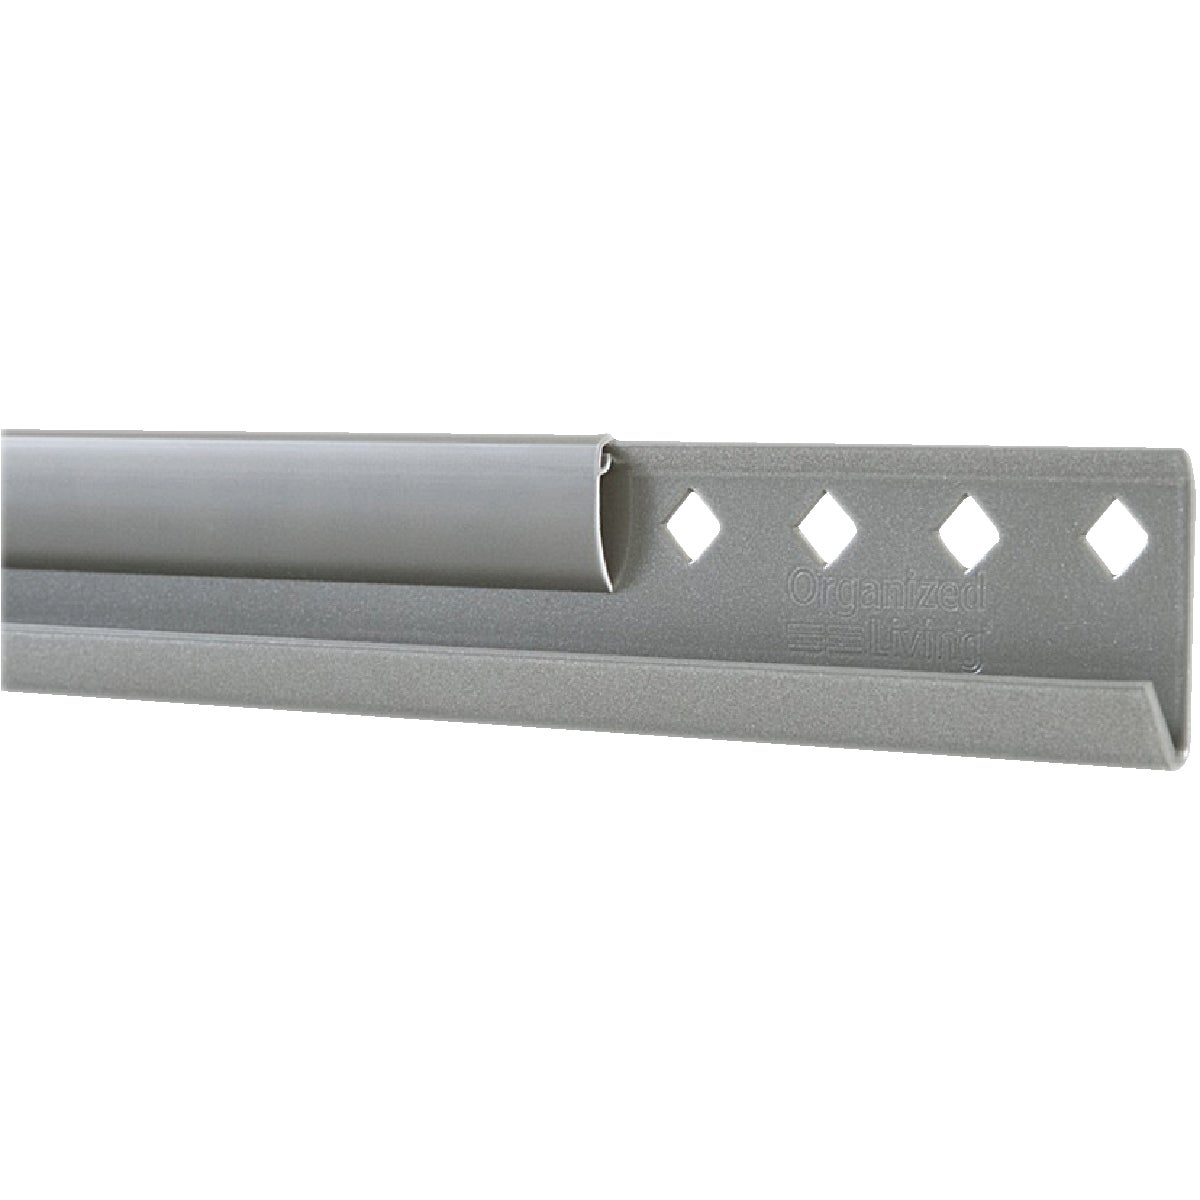 "64"" NICKEL HANGING RAIL - 7913446445 by Schulte Corp"